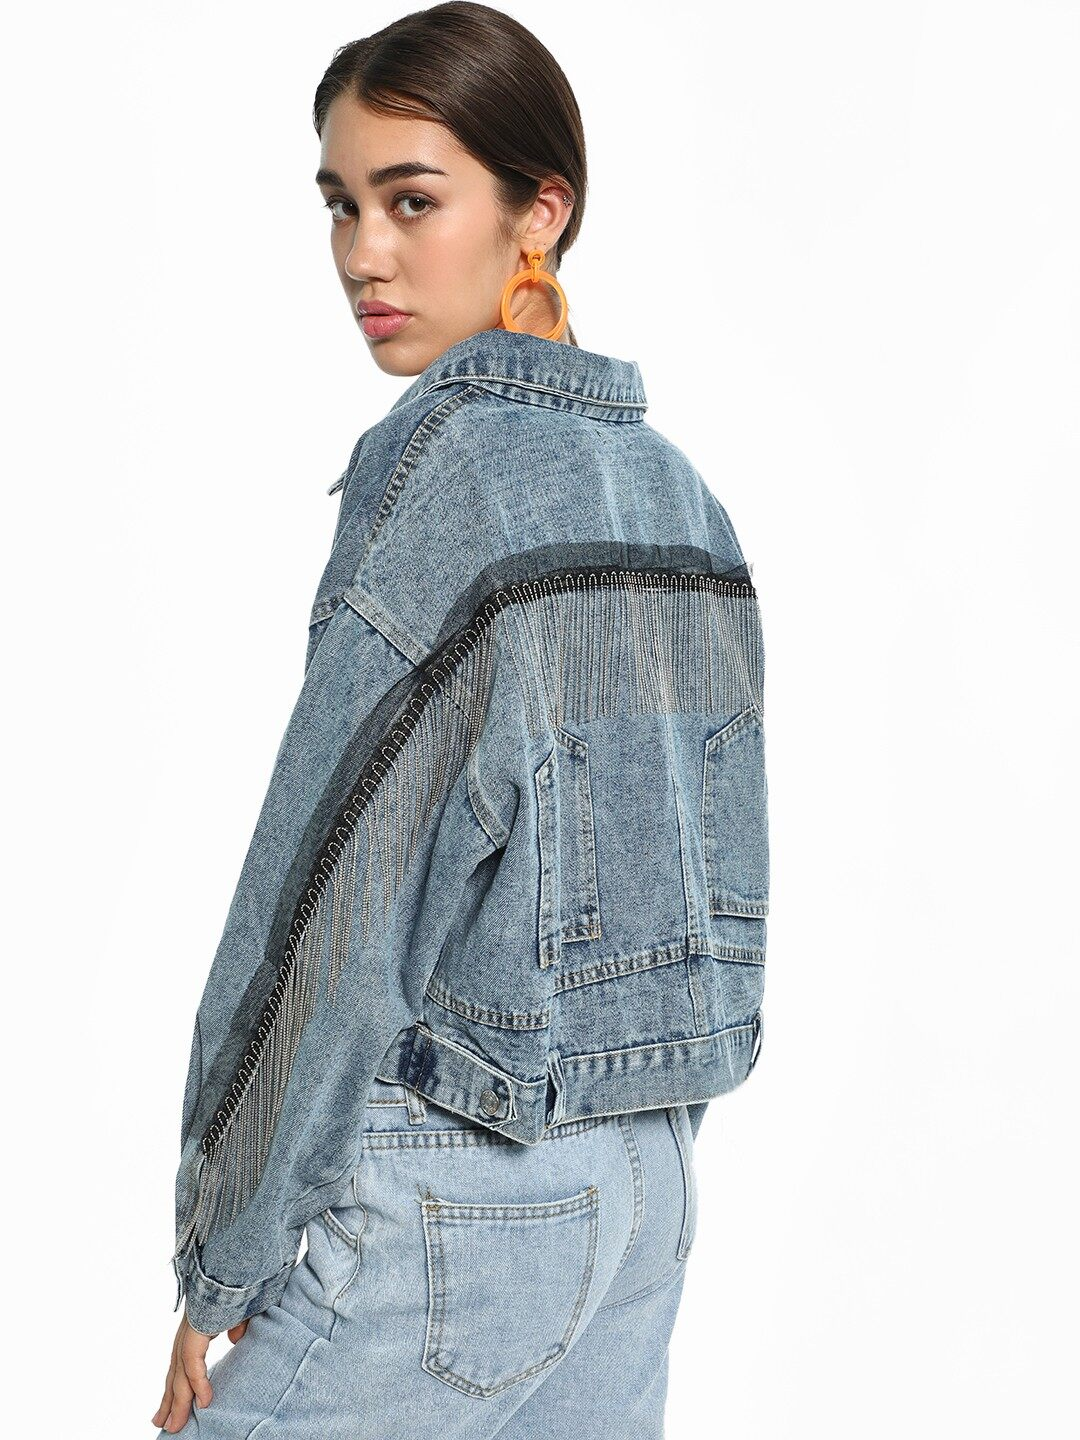 K Denim Blue KOOVS Stonewash Fringe Trim Denim Jacket 1